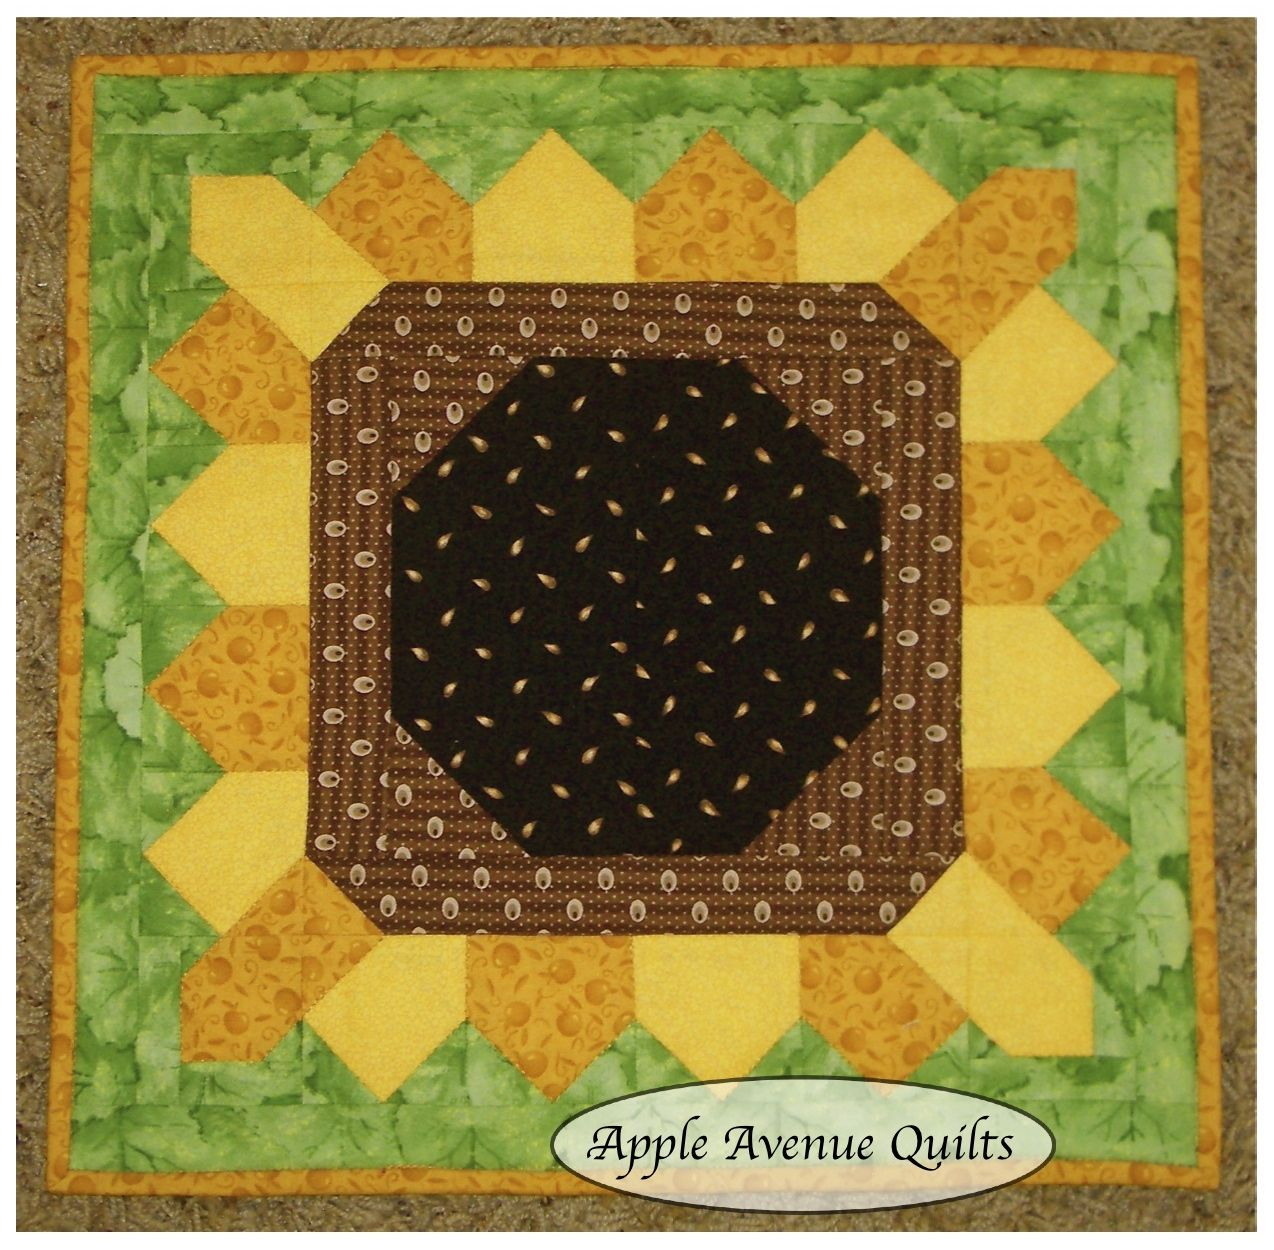 Monthly Calendar Quilt Patterns : Apple avenue quilts free block of the month